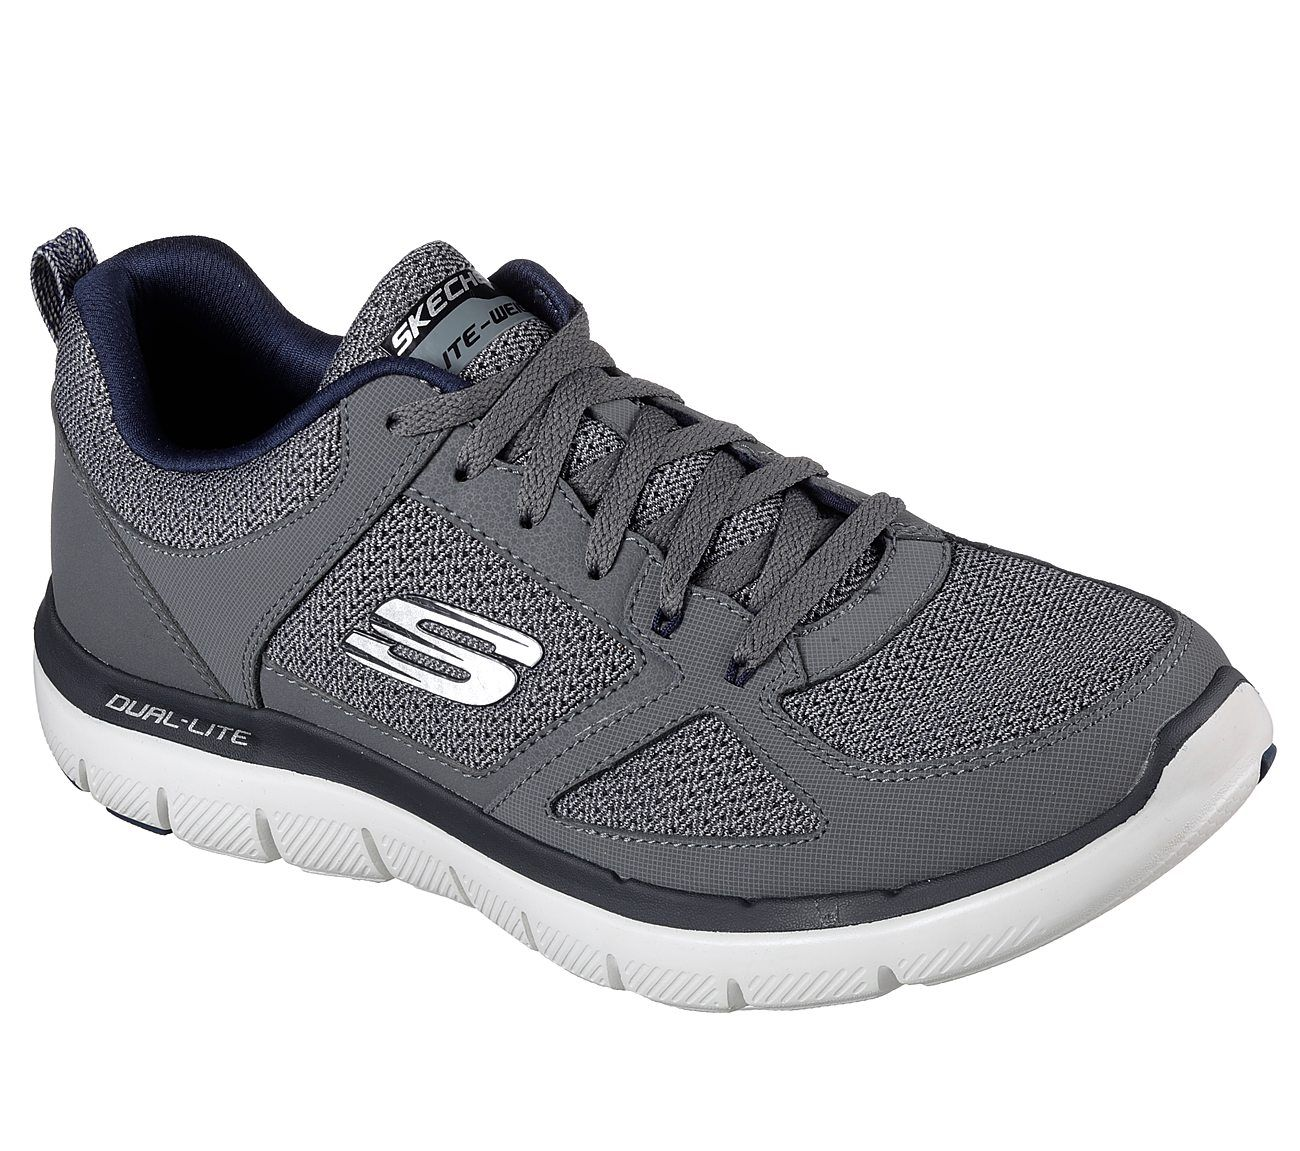 SKECHERS SPORT 8M GRAY LEATHER & TEXTILE WITH NAVY BLUE EXCELLENT CONDITION